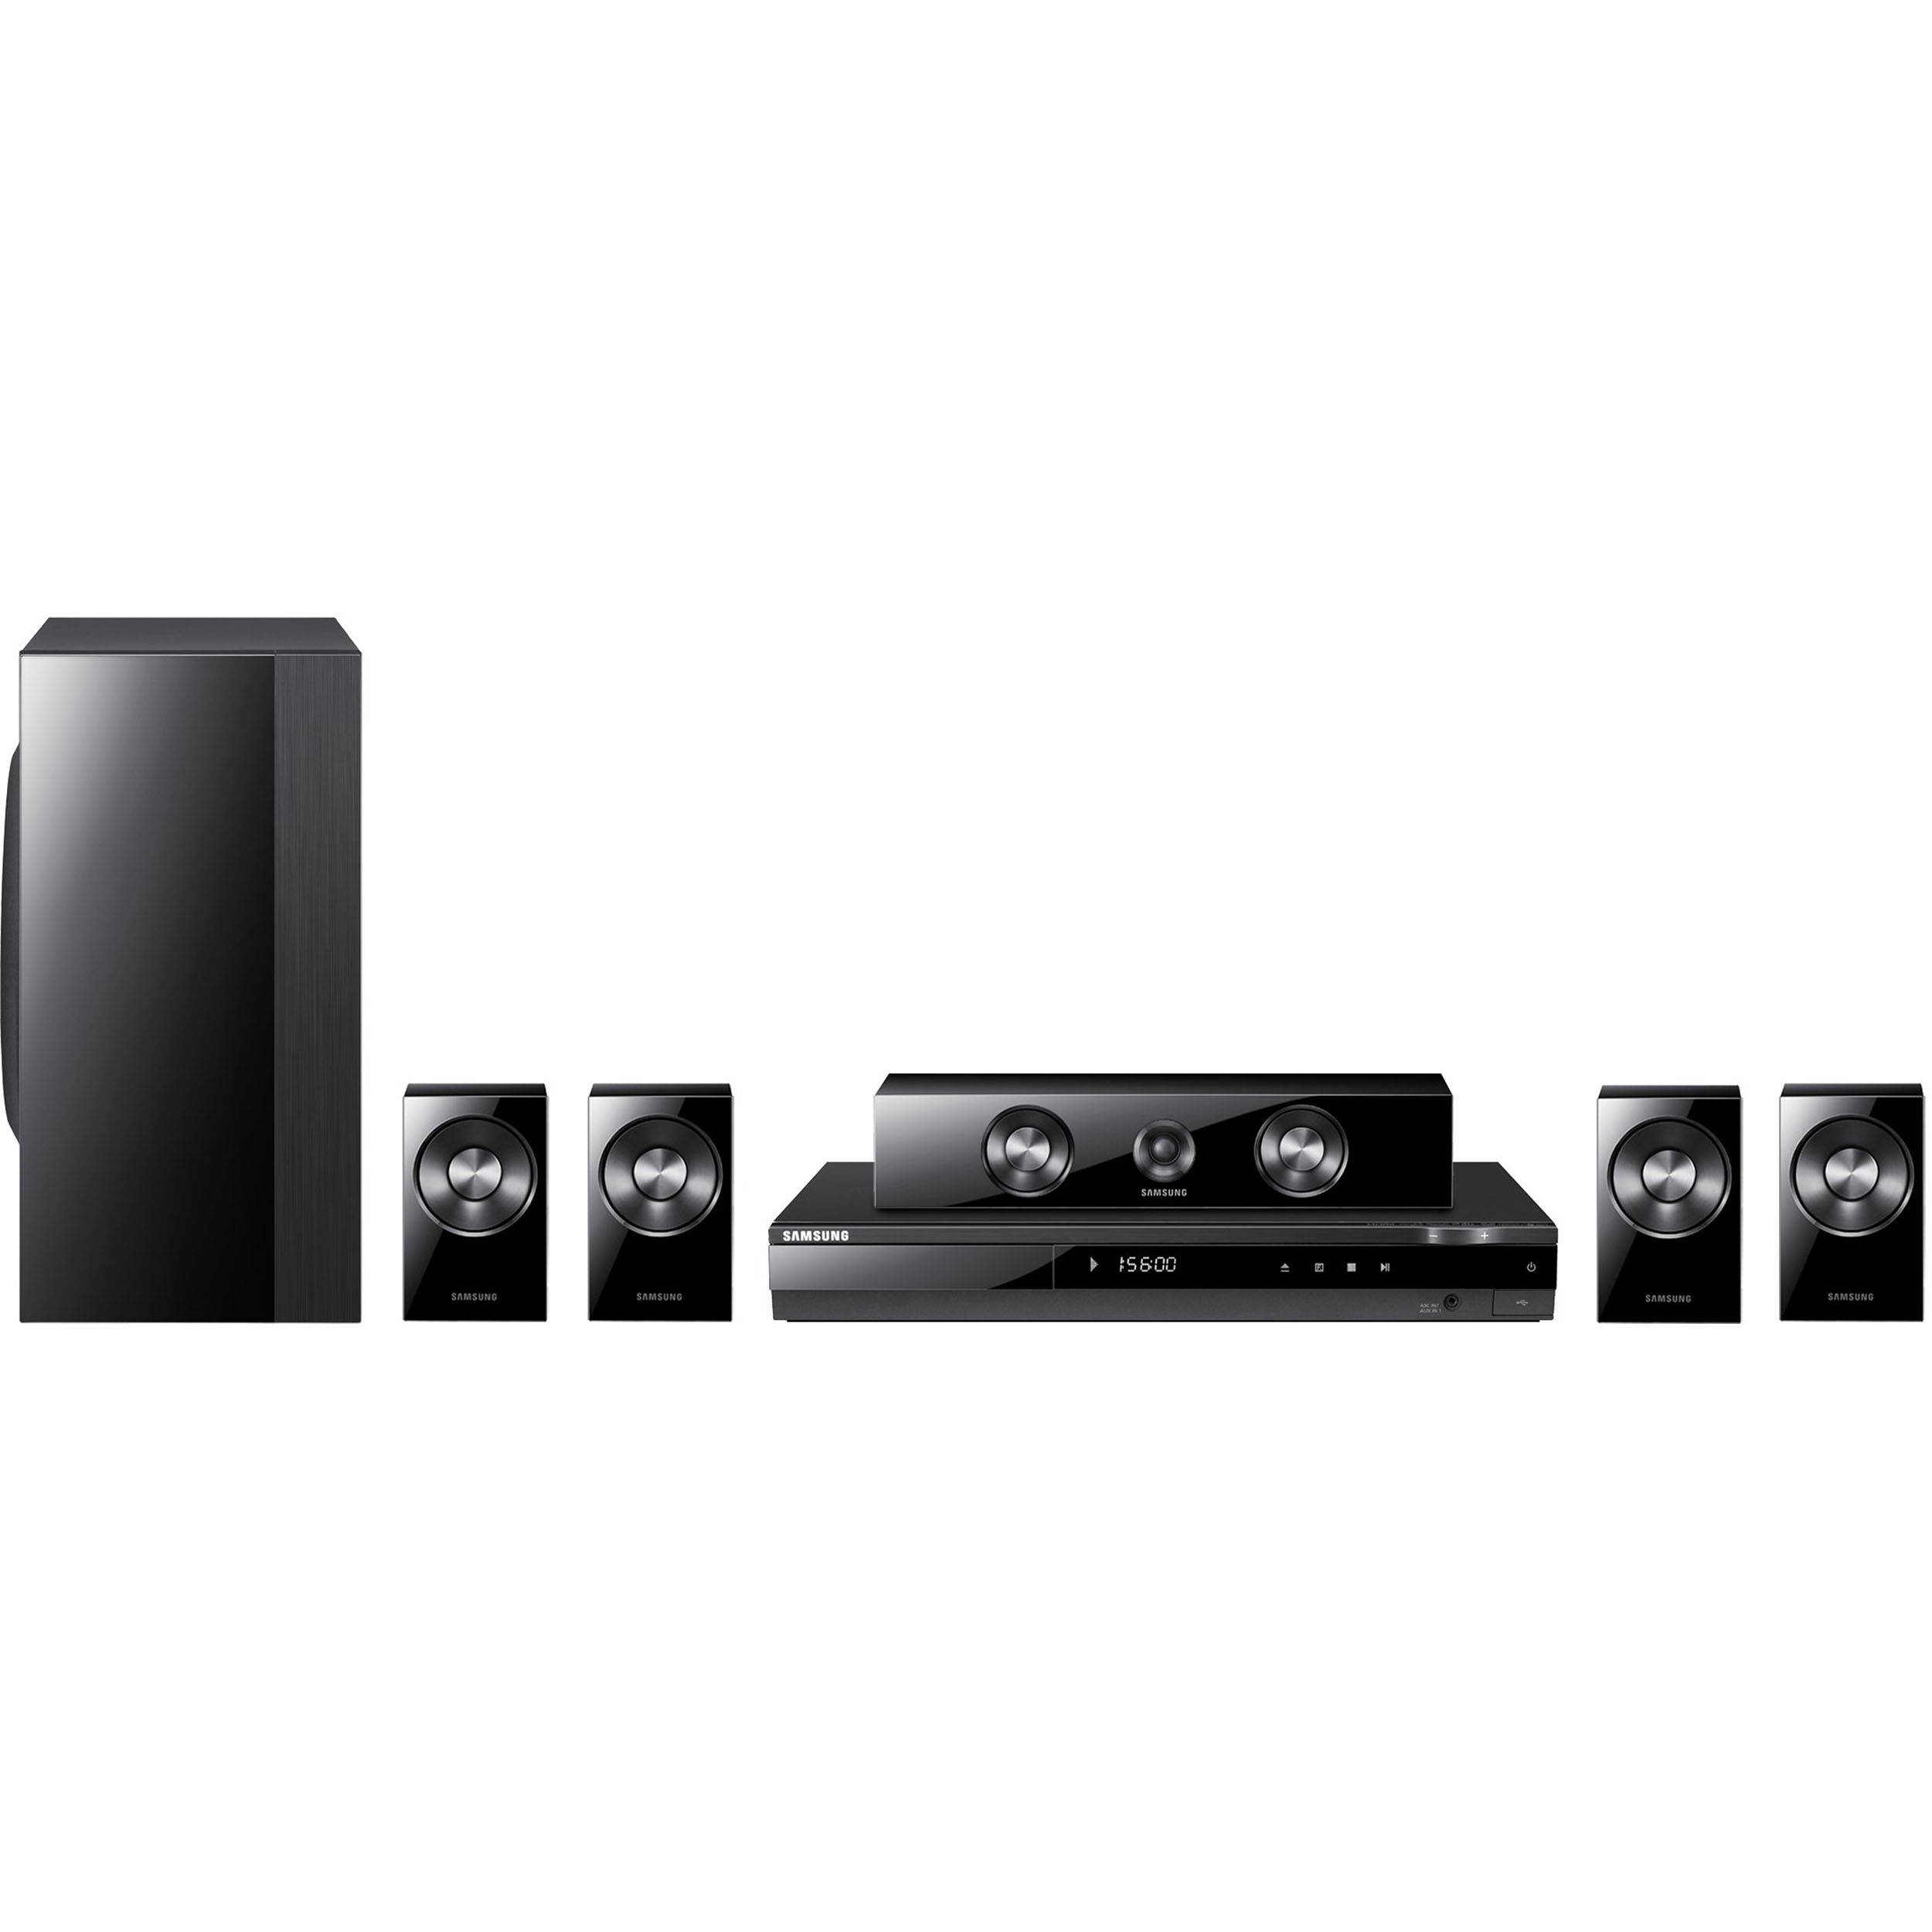 samsung ht d550 home theater system ht d550 b h photo video. Black Bedroom Furniture Sets. Home Design Ideas